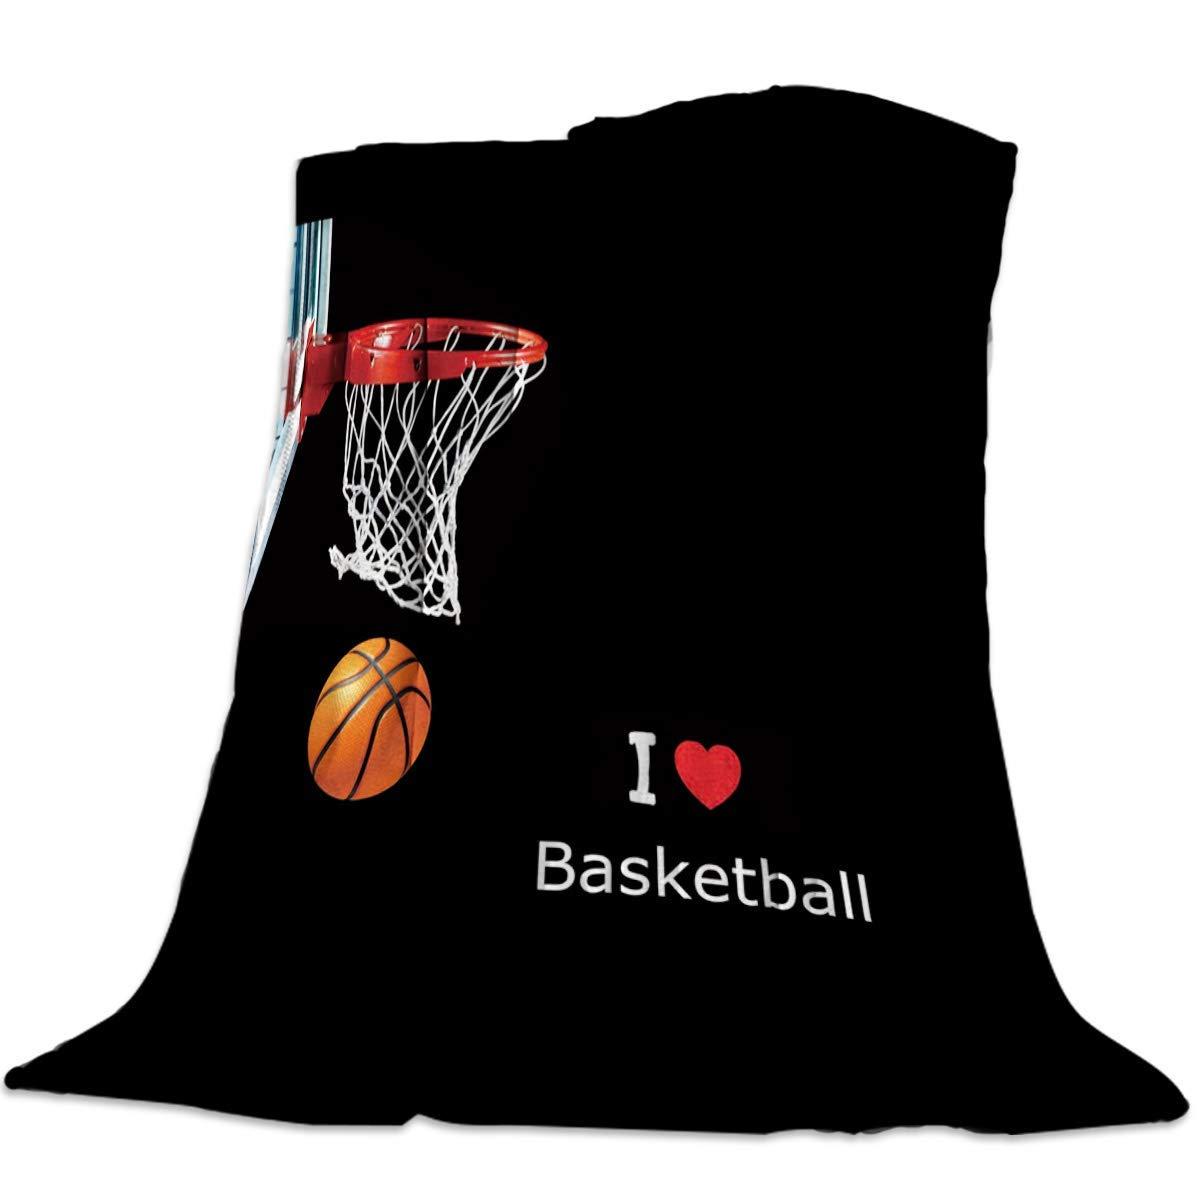 Cozy Warm Lightweight Microfiber Throw Blankets,Soft Reversible Flannel Fleece Bed Throw Basketball Box I Love Basketball,Luxury Fuzzy Blankets for Adults/Girls/Kids/Boys/Dogs/Couch,59''W x 79''L by wanxinfu